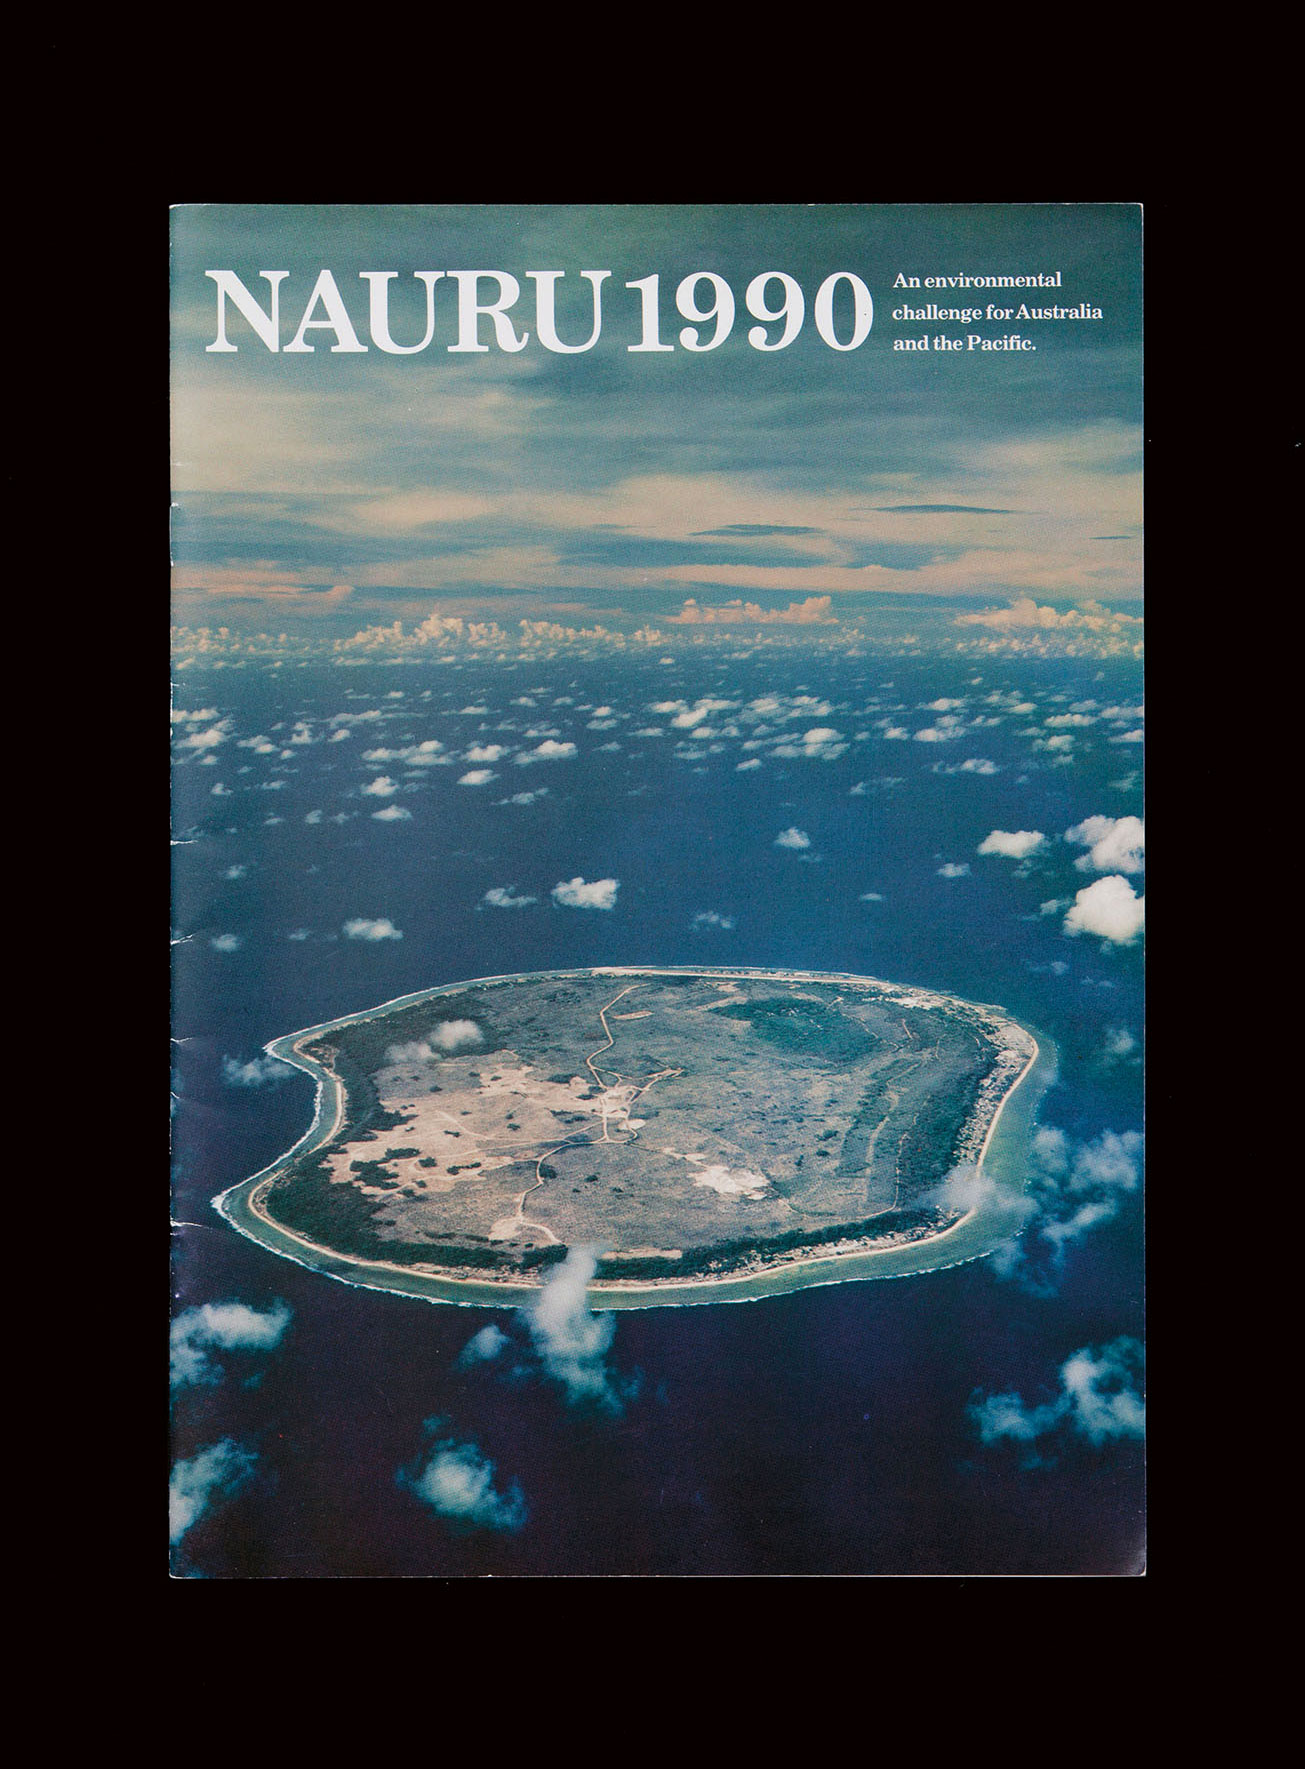 Front cover of *Nauru 1990: An Environmental Challenge for Australia and the Pacific*, produced for the Government of the Republic of Nauru by Helen Bogdan and Associates in Melbourne, 1990. Reproduction photographer: Andrew Curtis.